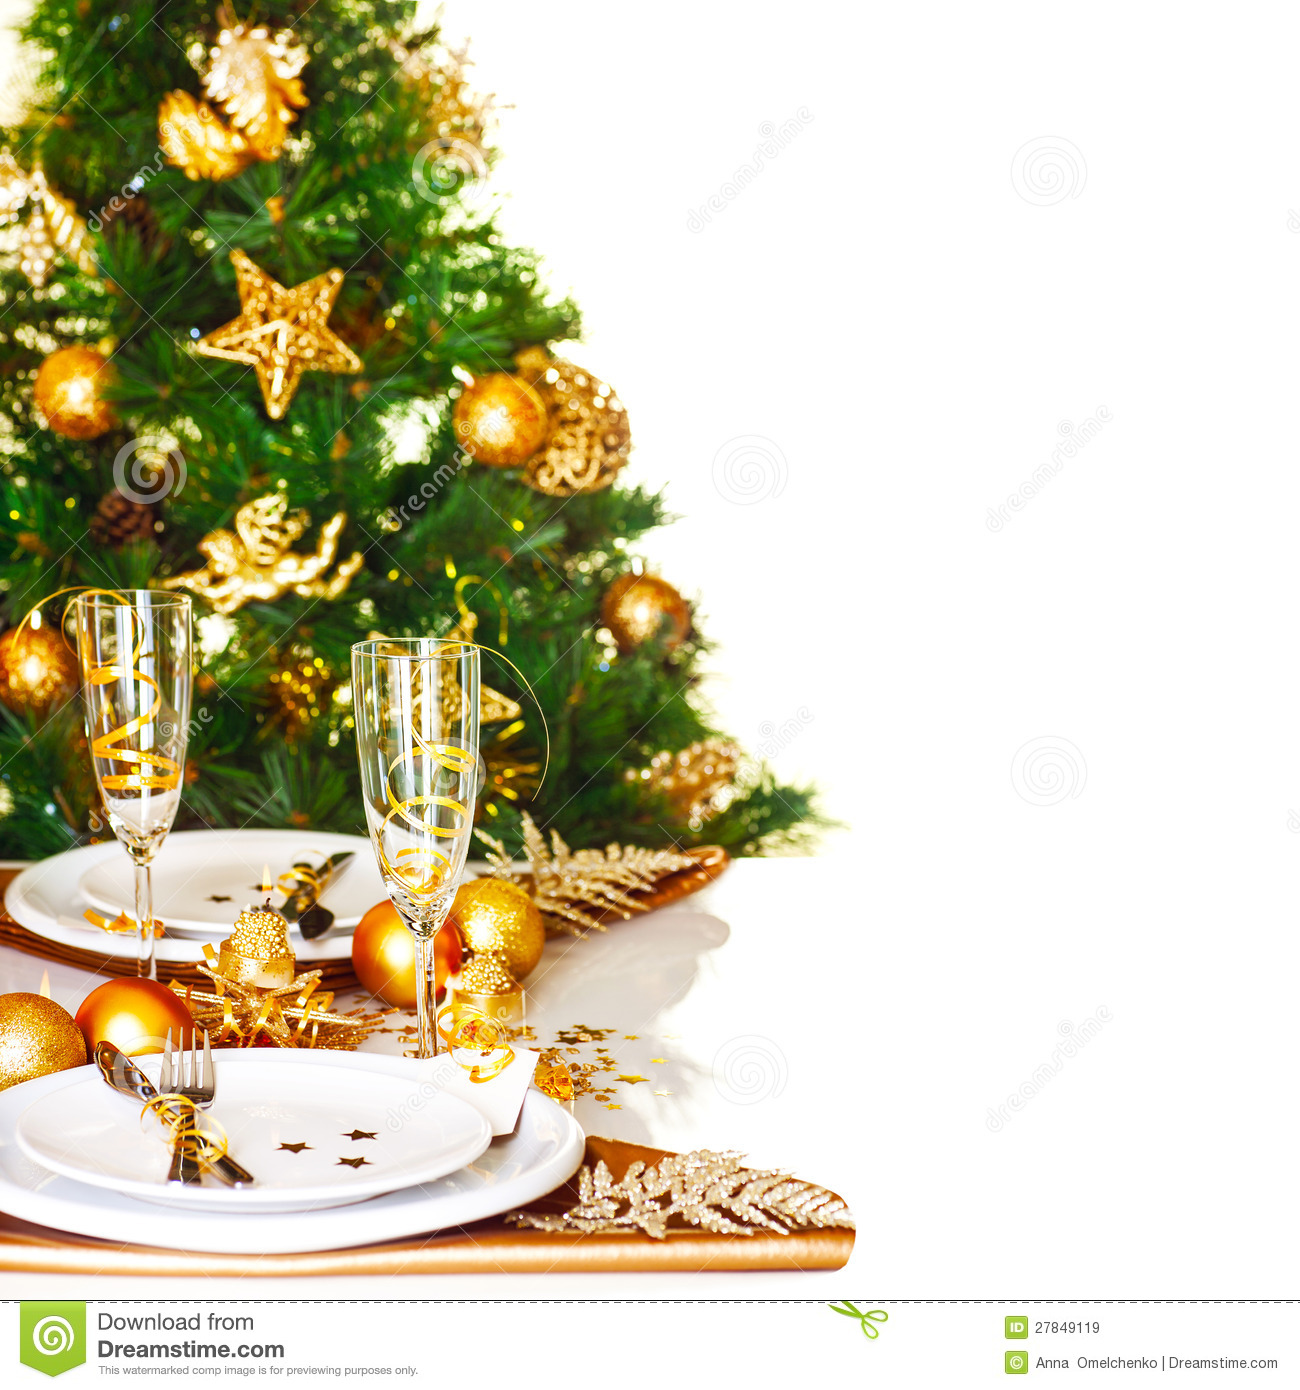 Free Christmas Dinner.Christmas Dinner Border Stock Image Image Of Decor